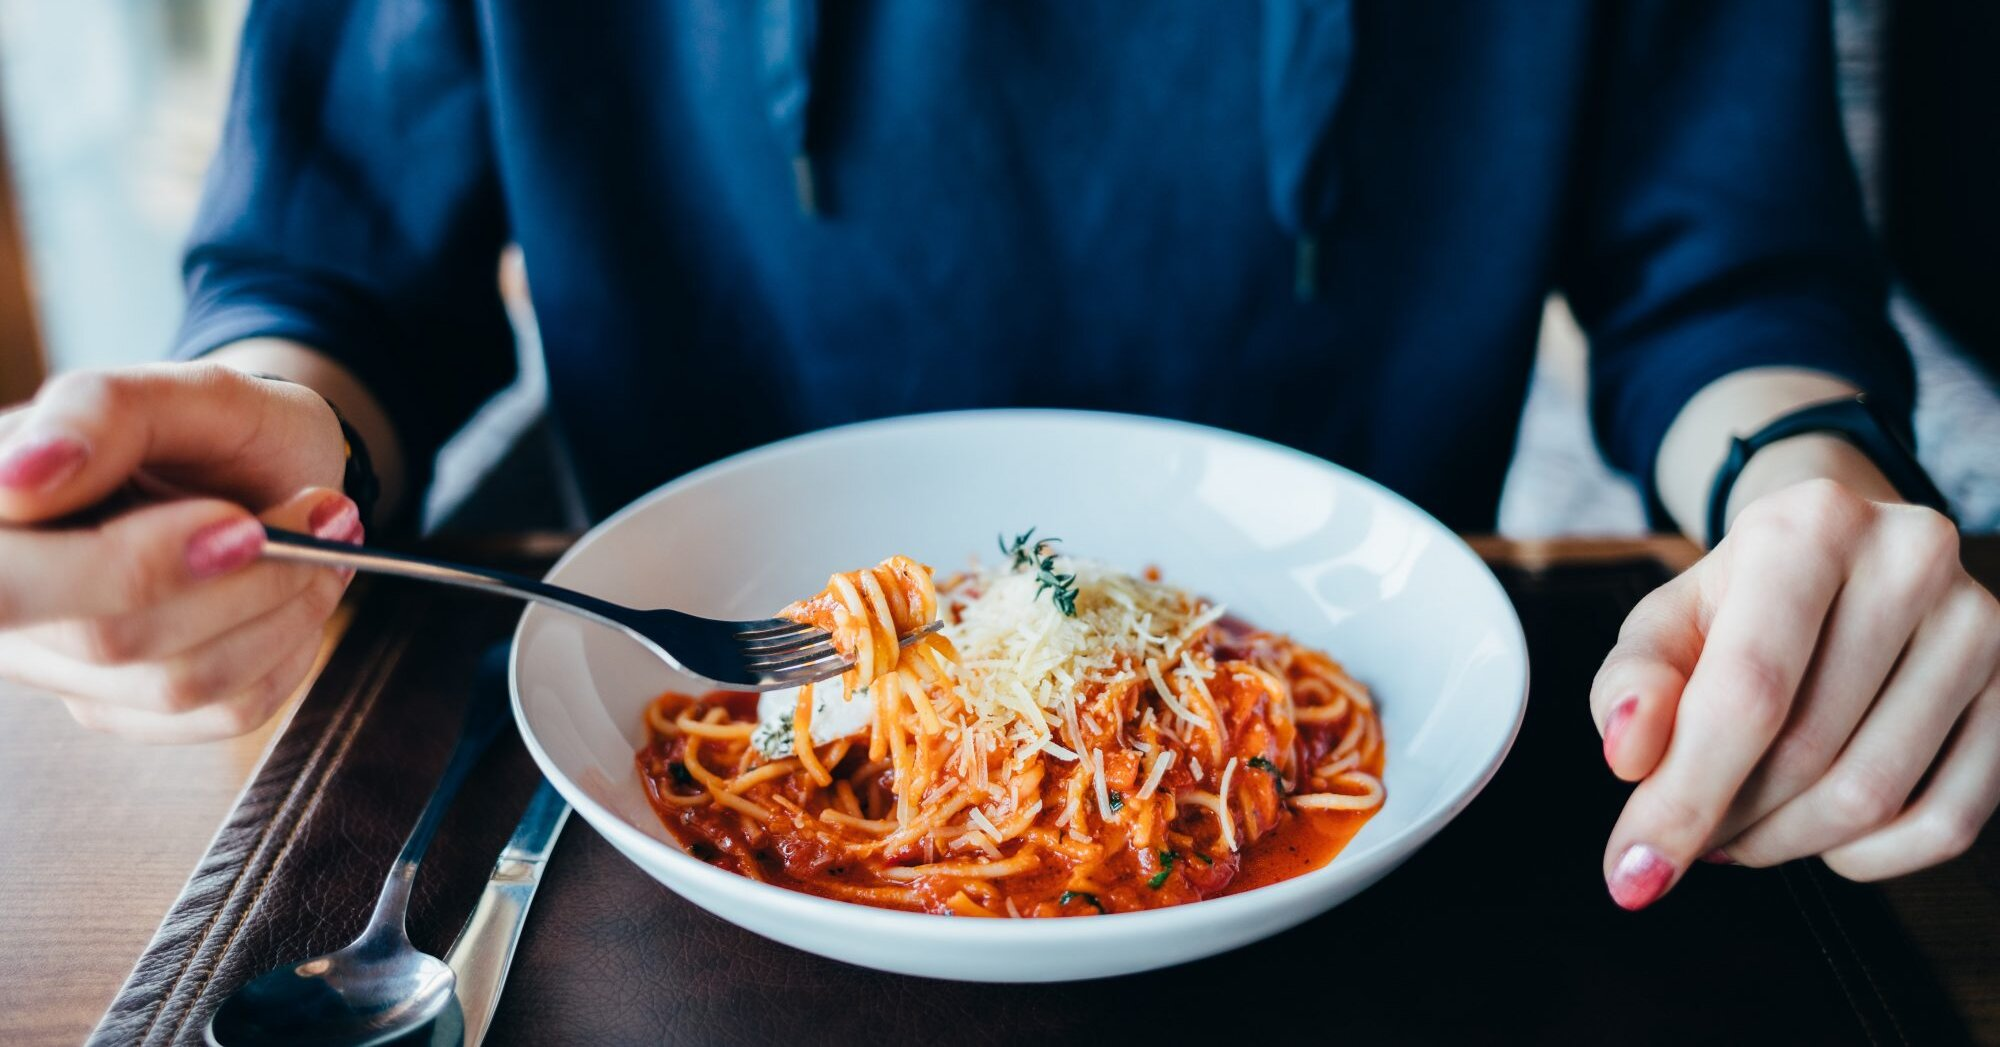 New Research Shows That Pasta Has Legitimate Health Benefits